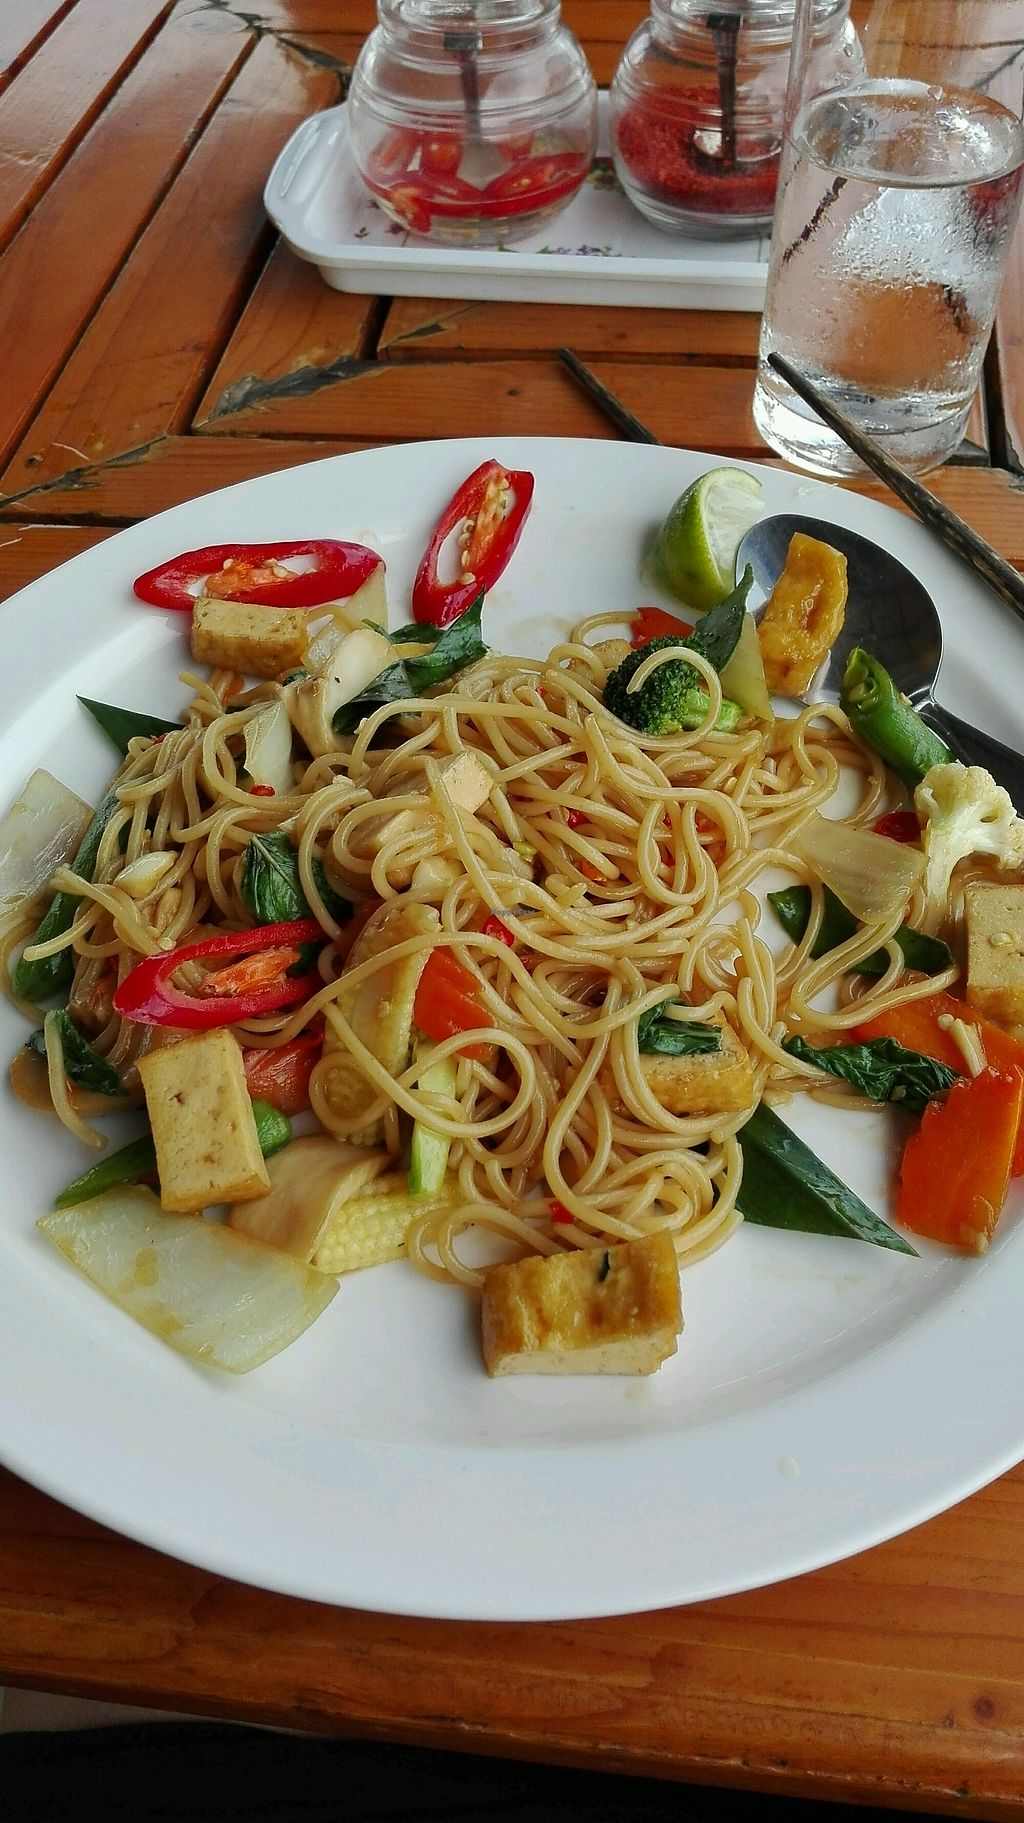 """Photo of Pinto Restaurant  by <a href=""""/members/profile/Escarabajo"""">Escarabajo</a> <br/>spicy Spaghetti with tofu <br/> January 31, 2018  - <a href='/contact/abuse/image/107357/353127'>Report</a>"""